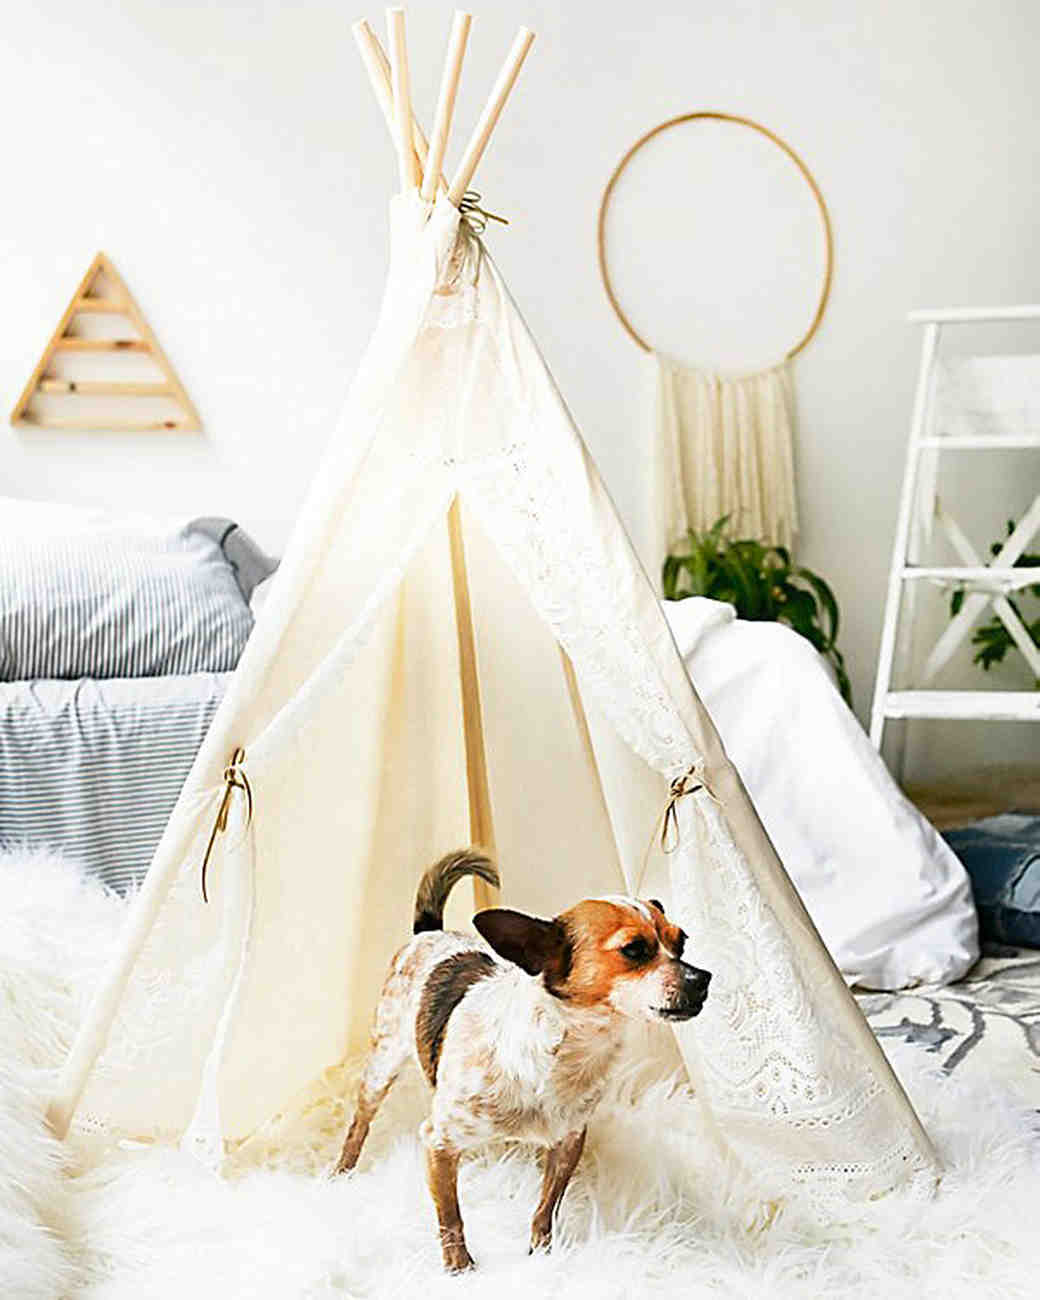 41 Adorable Gifts for Your Pets | Martha Stewart Weddings